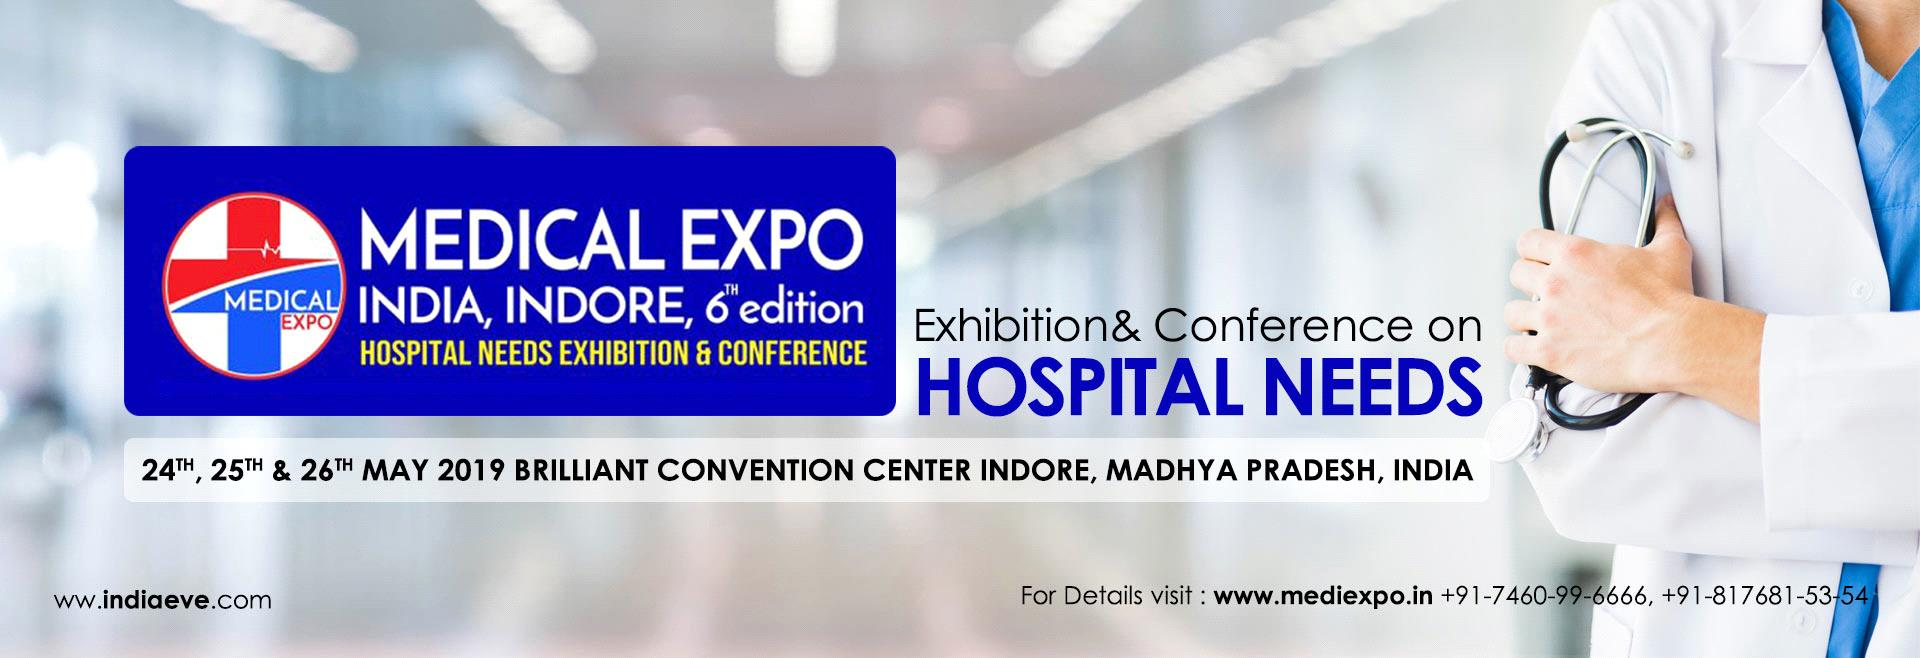 6th Medical Expo India